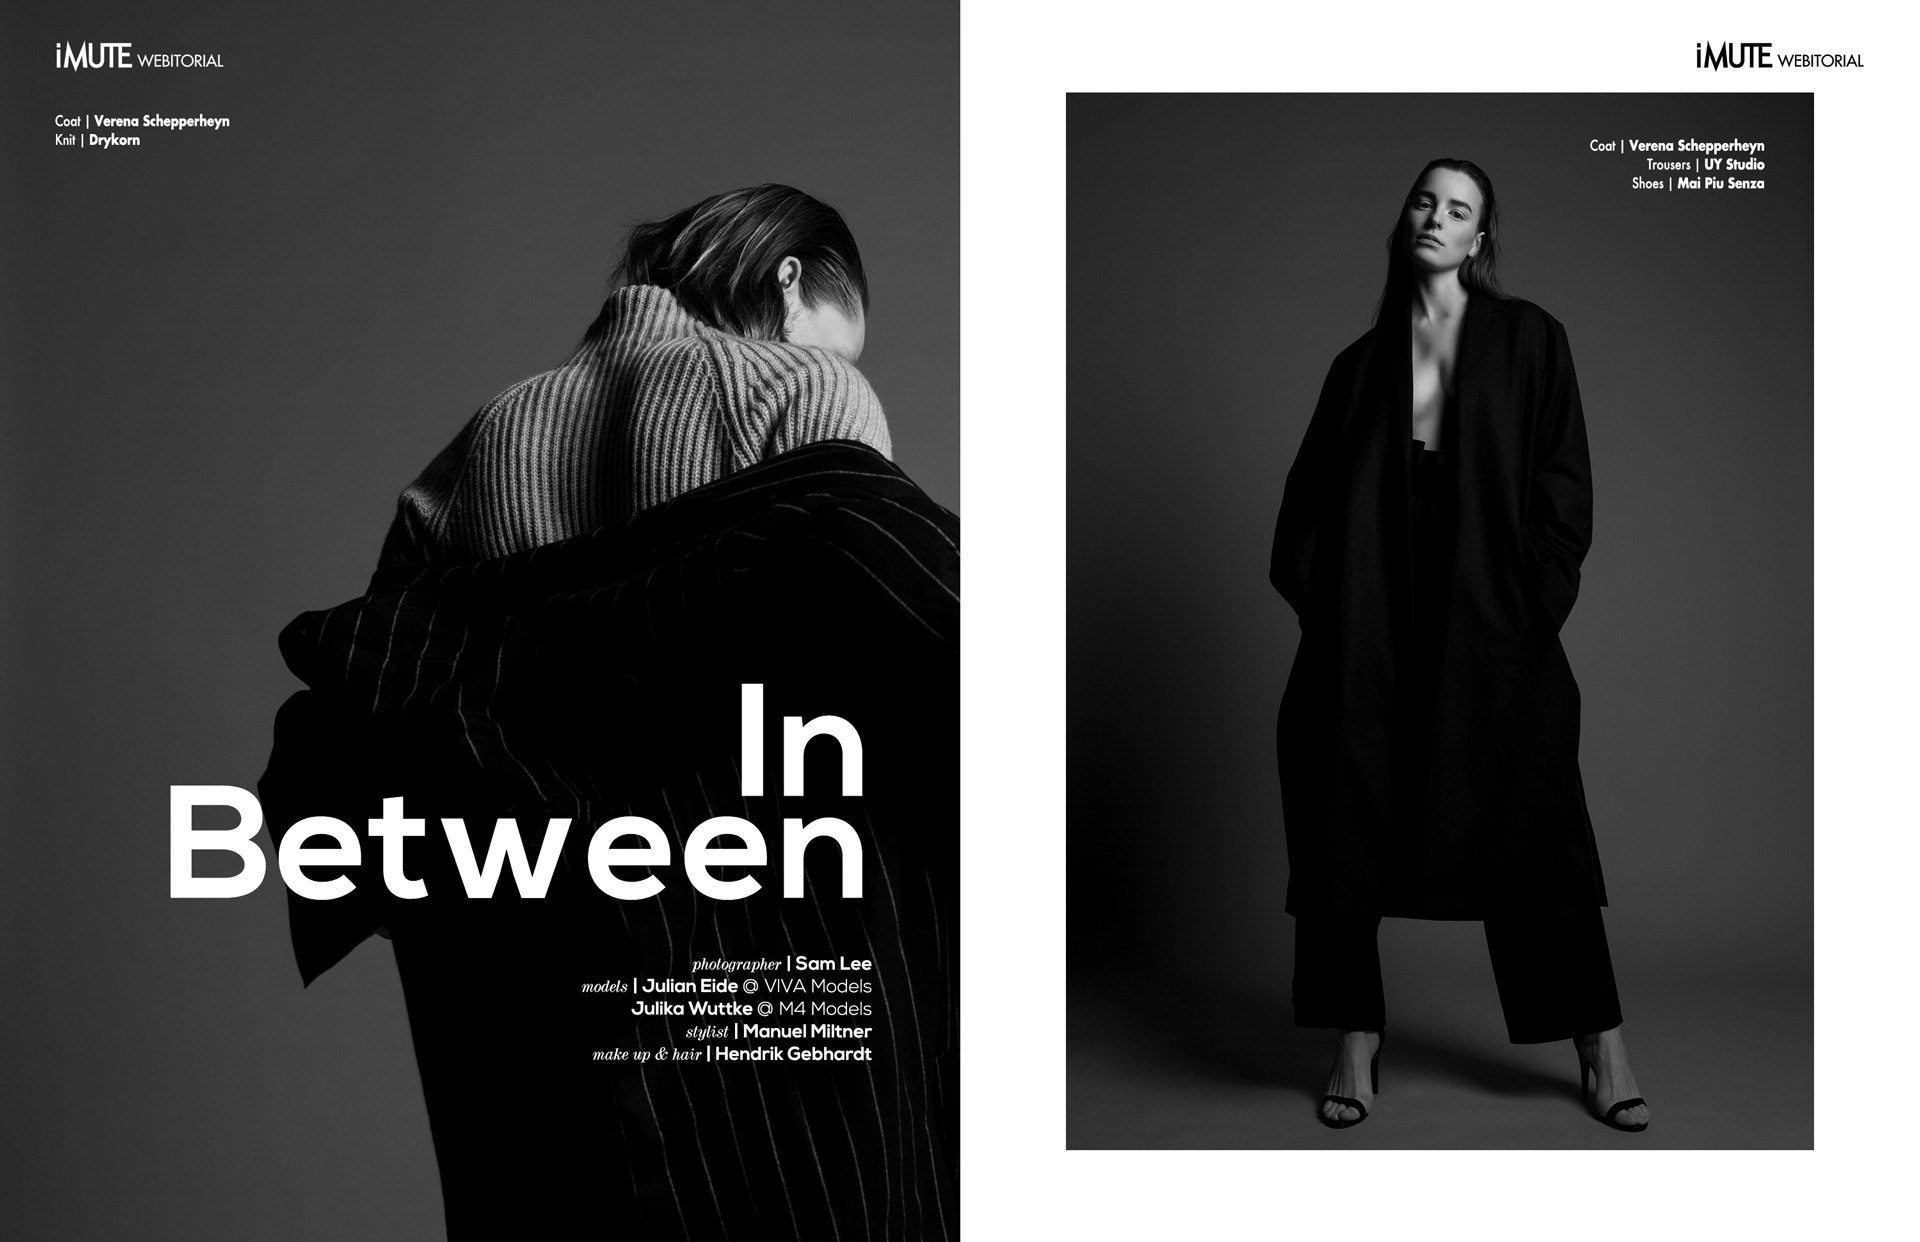 In Between webitorial for iMute Magazine Photographer | Sam Lee Models | Julian Eide @ VIVA Models & Julika Wuttke @ M4 Models Stylist | Manuel Miltner Makeup & Hair | Hendrik Gebhardt